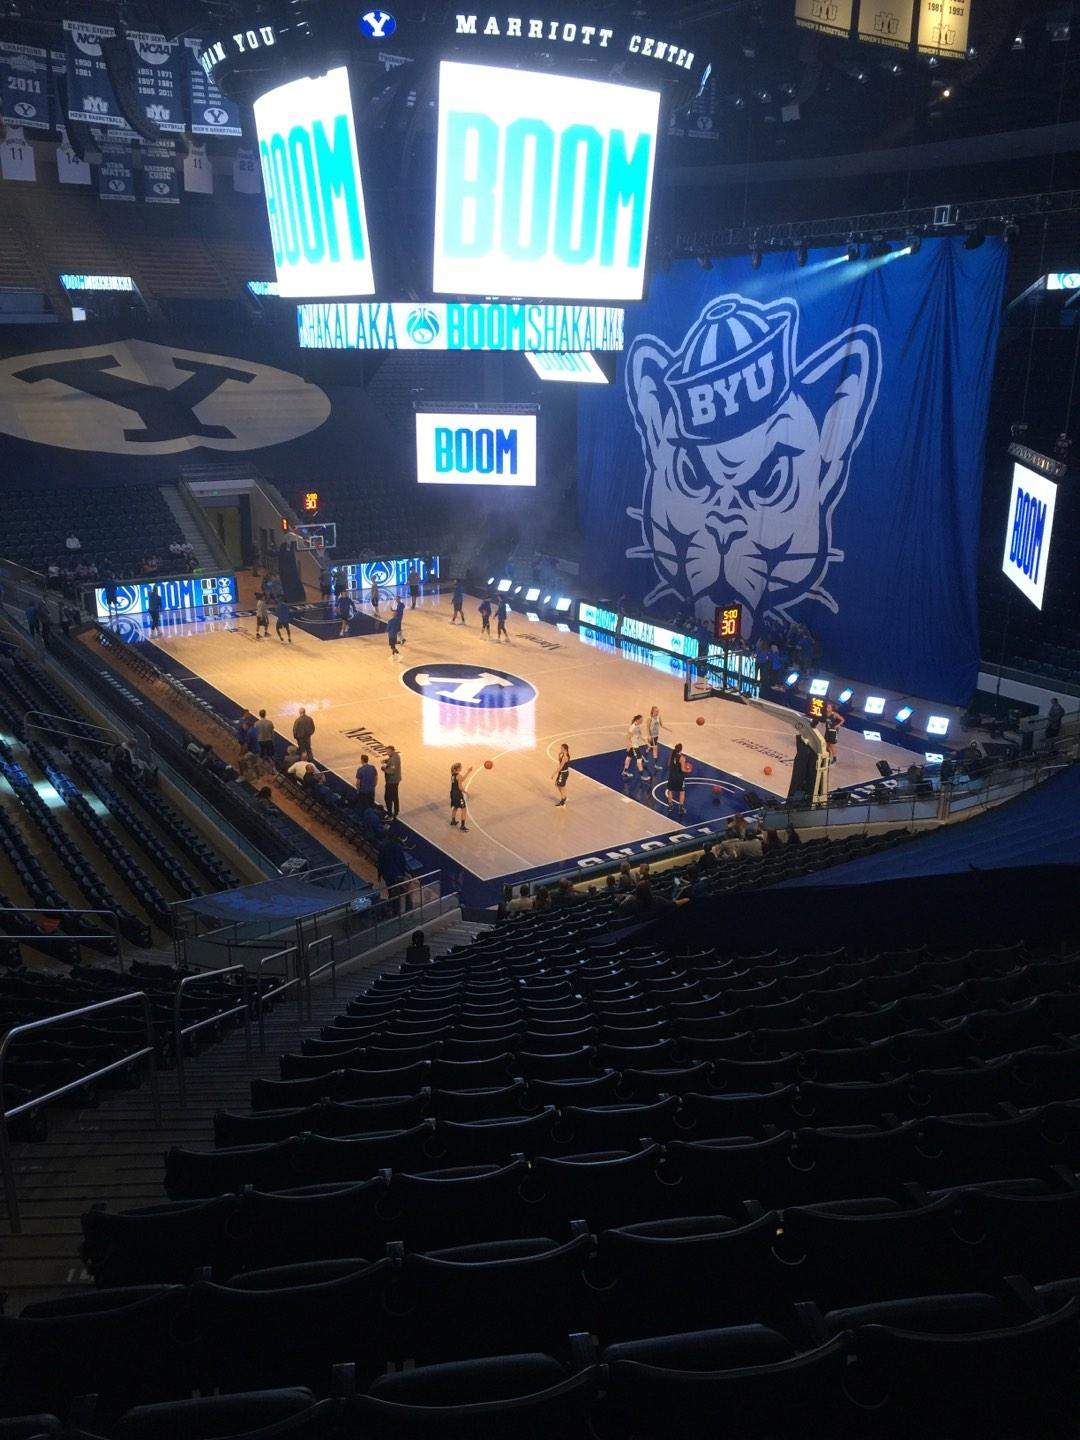 Marriott Center Section 5 Row 24 Seat 17